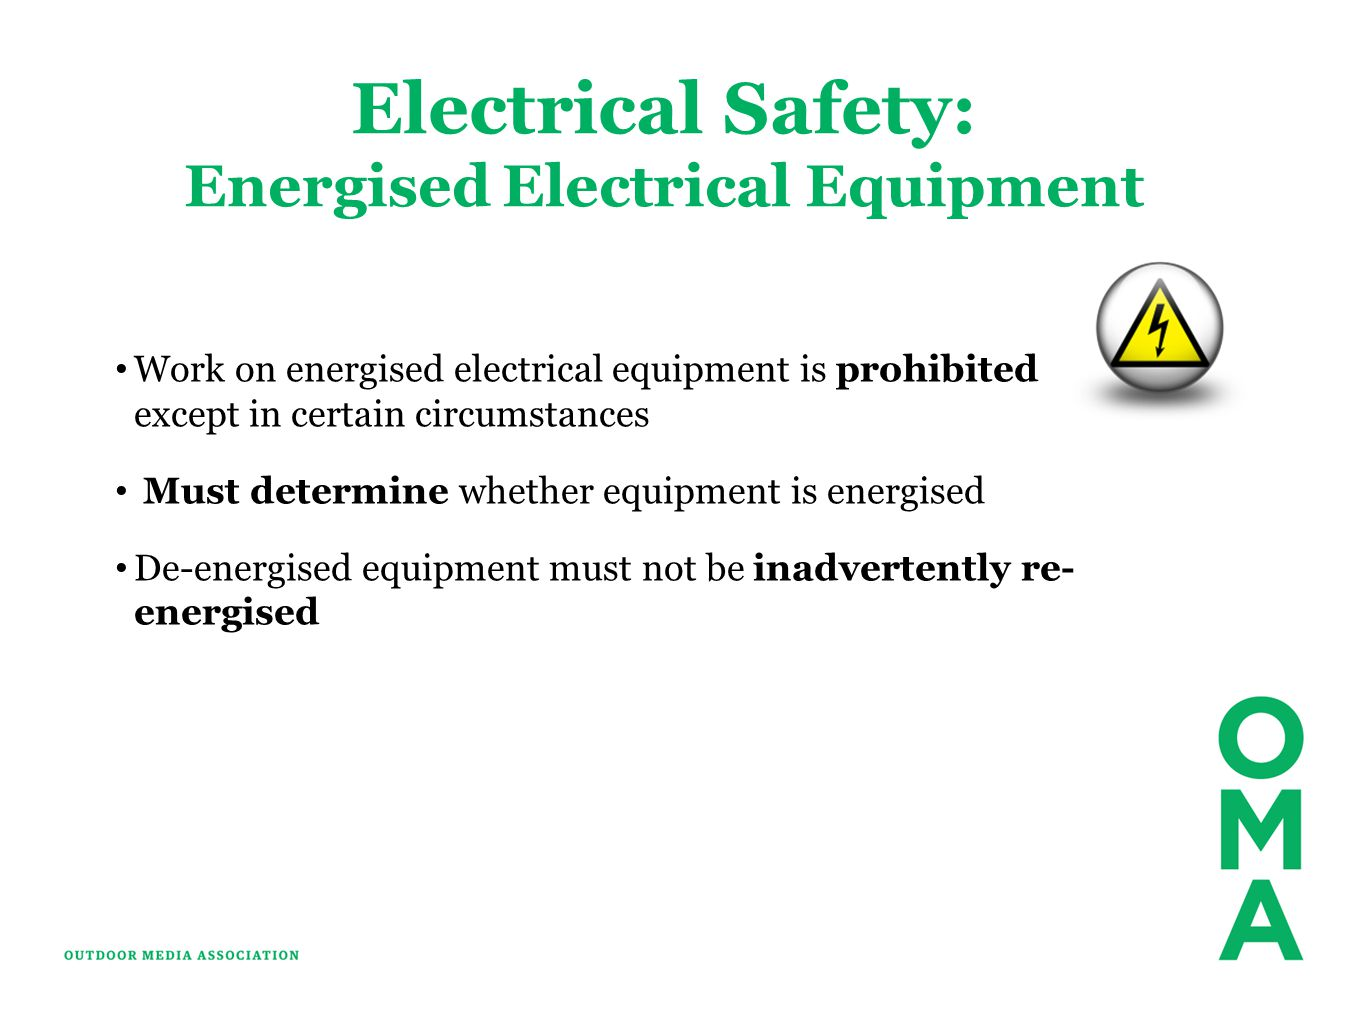 Energised Electrical Equipment